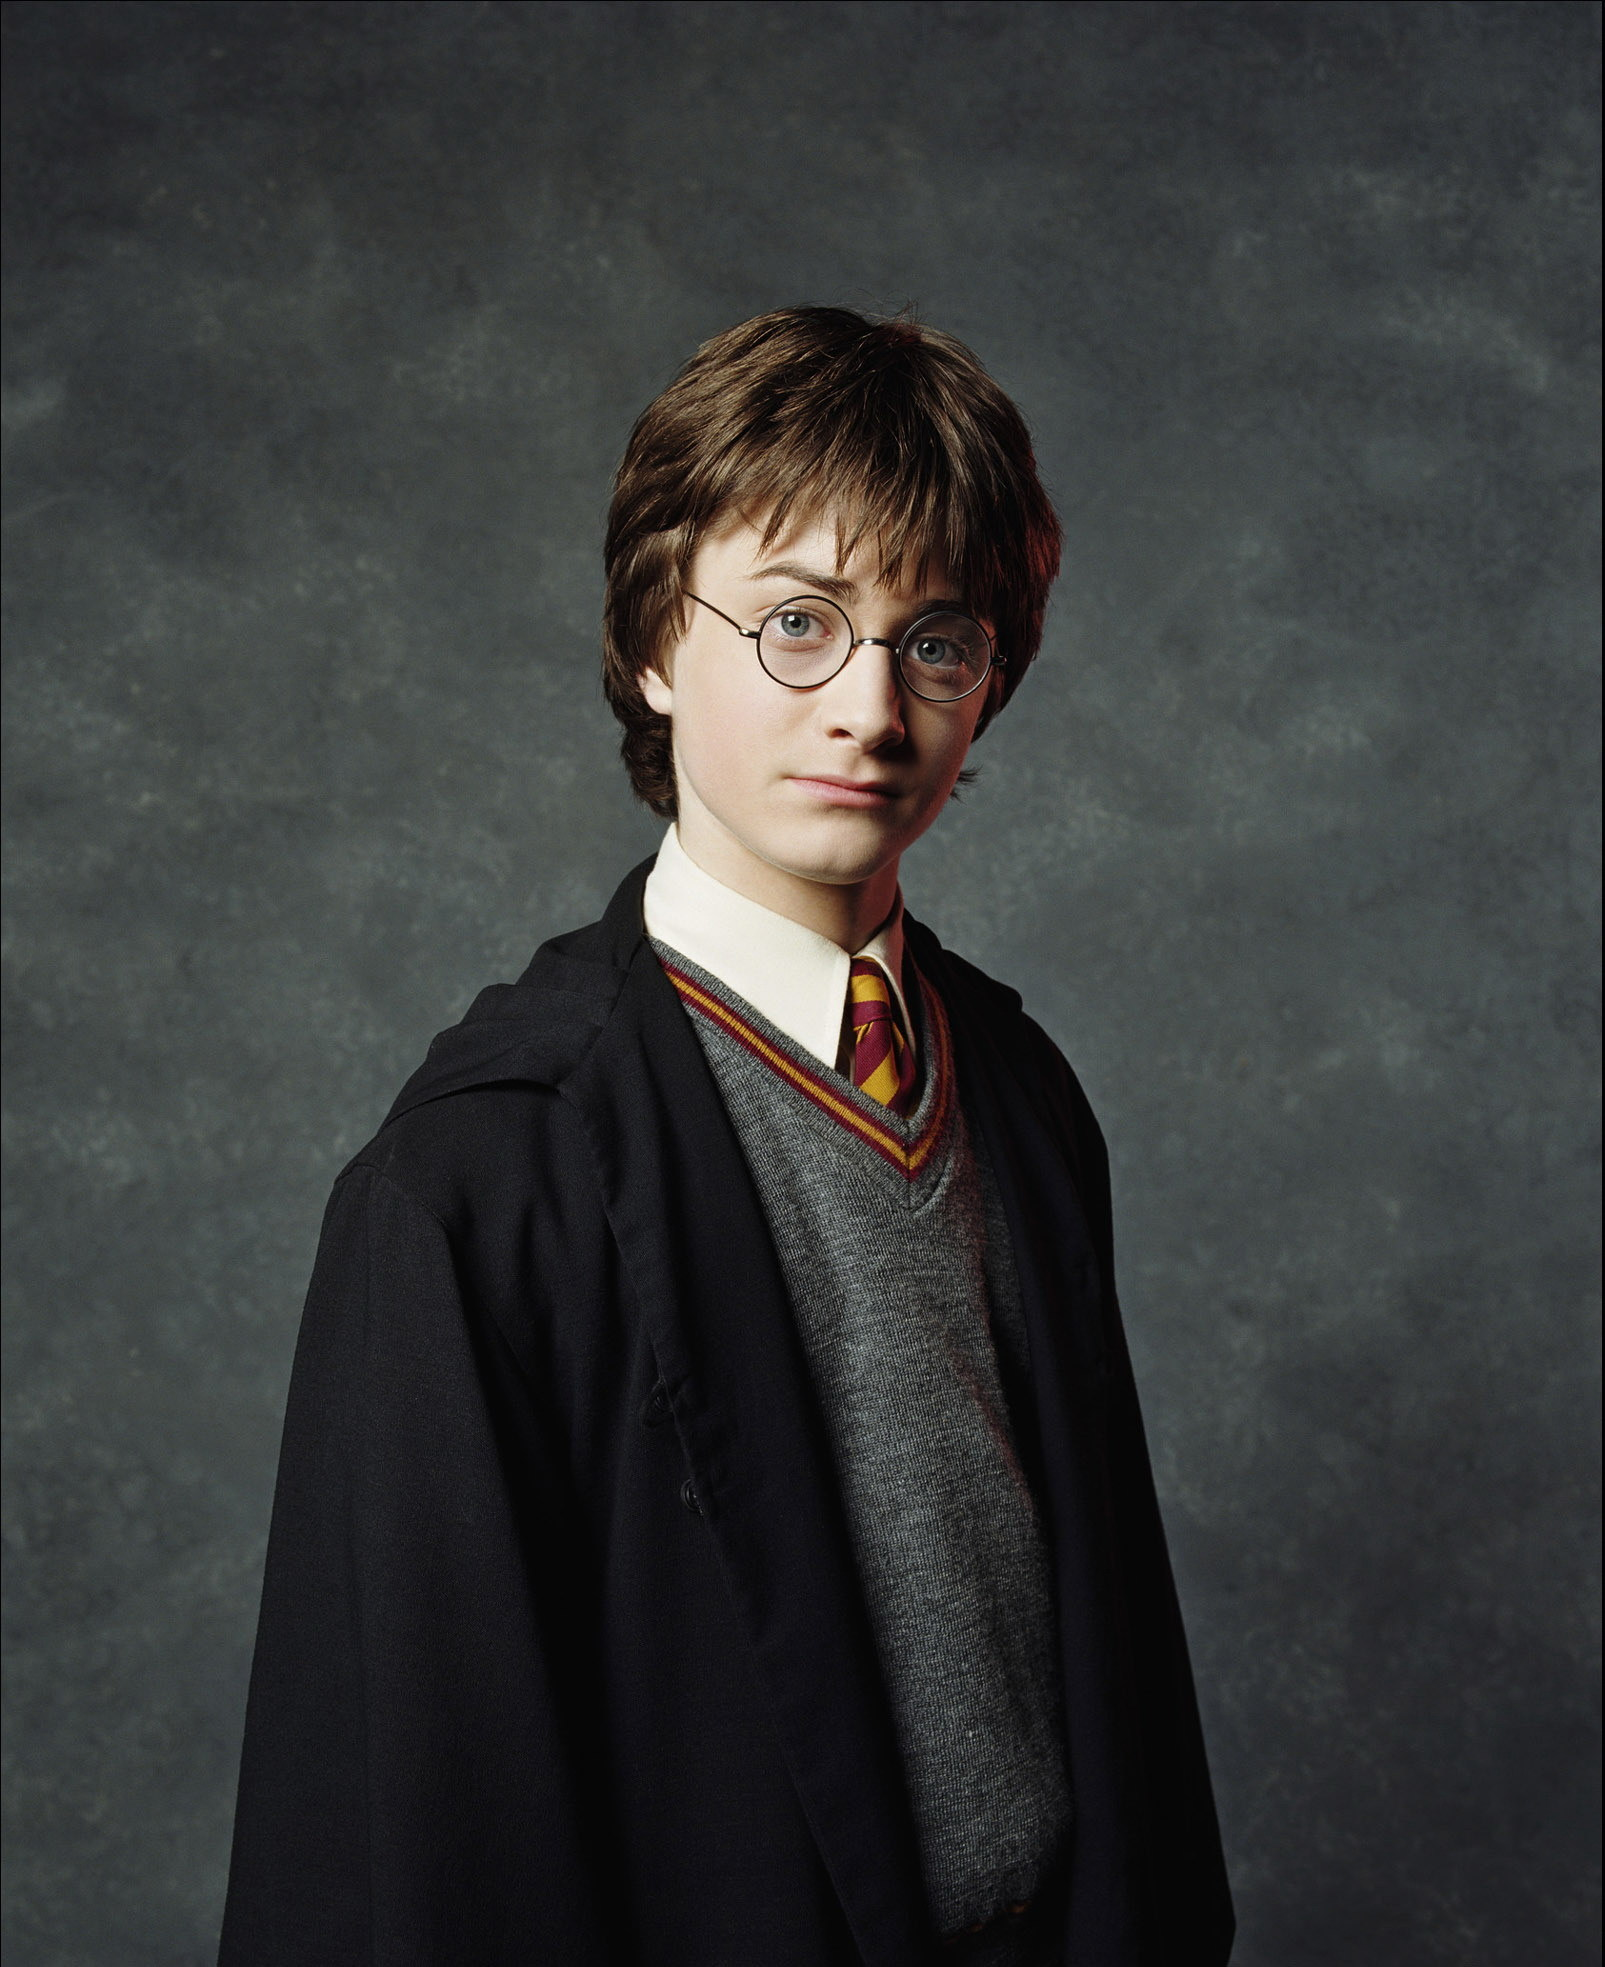 Harry James Potter images 2001. Harry Potter and the ...